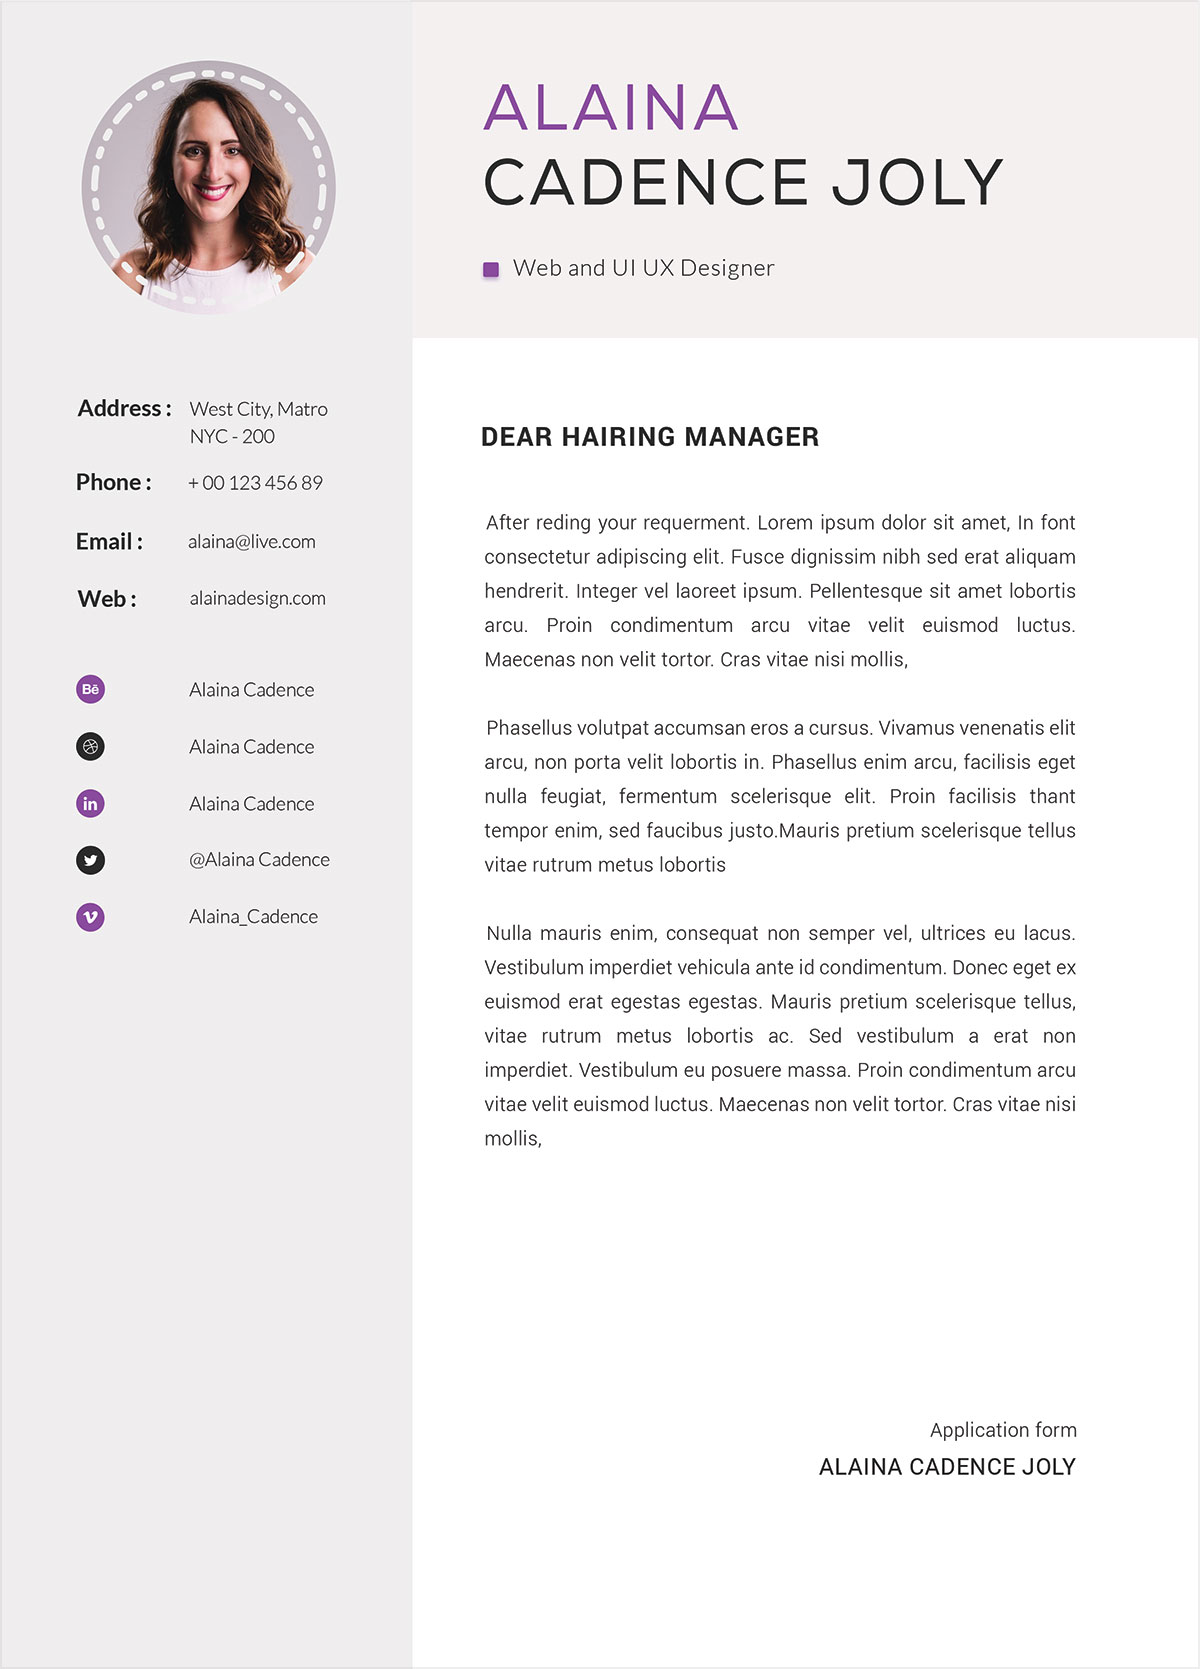 Free-Clean-&-Professional-Resume-With-Cover-Letter-PSD-7